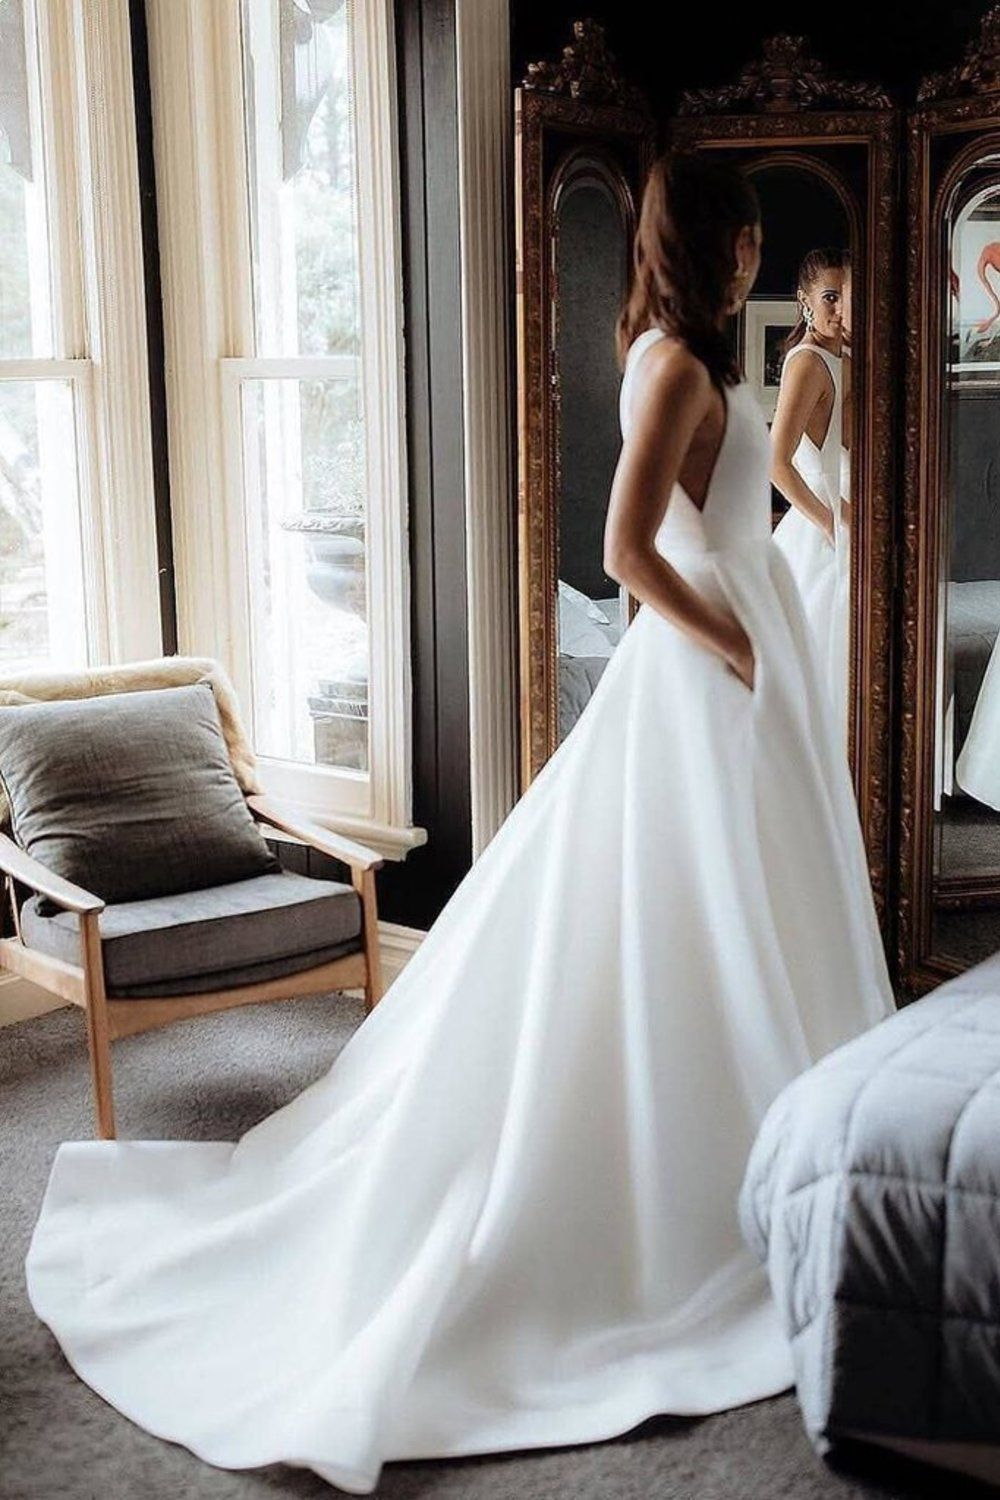 Simple Round Neck Satin Ivory Wedding Dresses With Pockets, Long Wedding Gowns